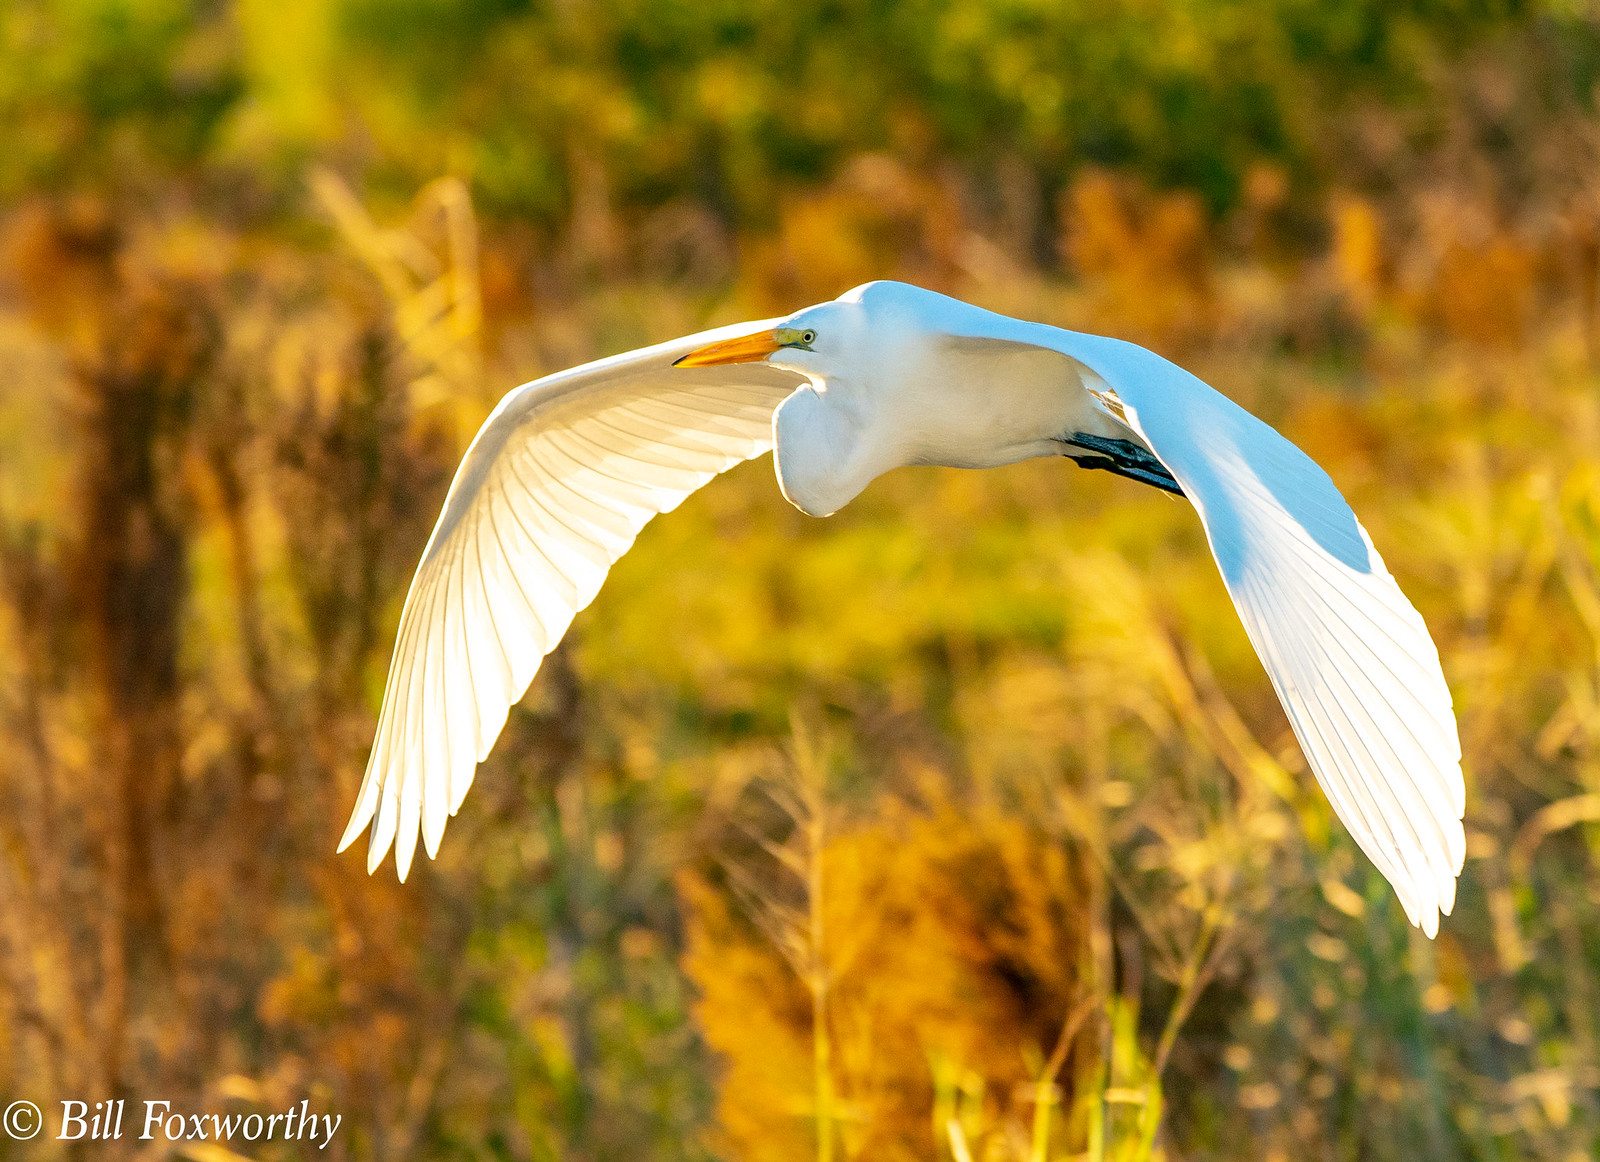 SONY ILVE-A9, Great White Egret, 2232, 1-1250, f8, ISO 1250, 100-400@ 256mm